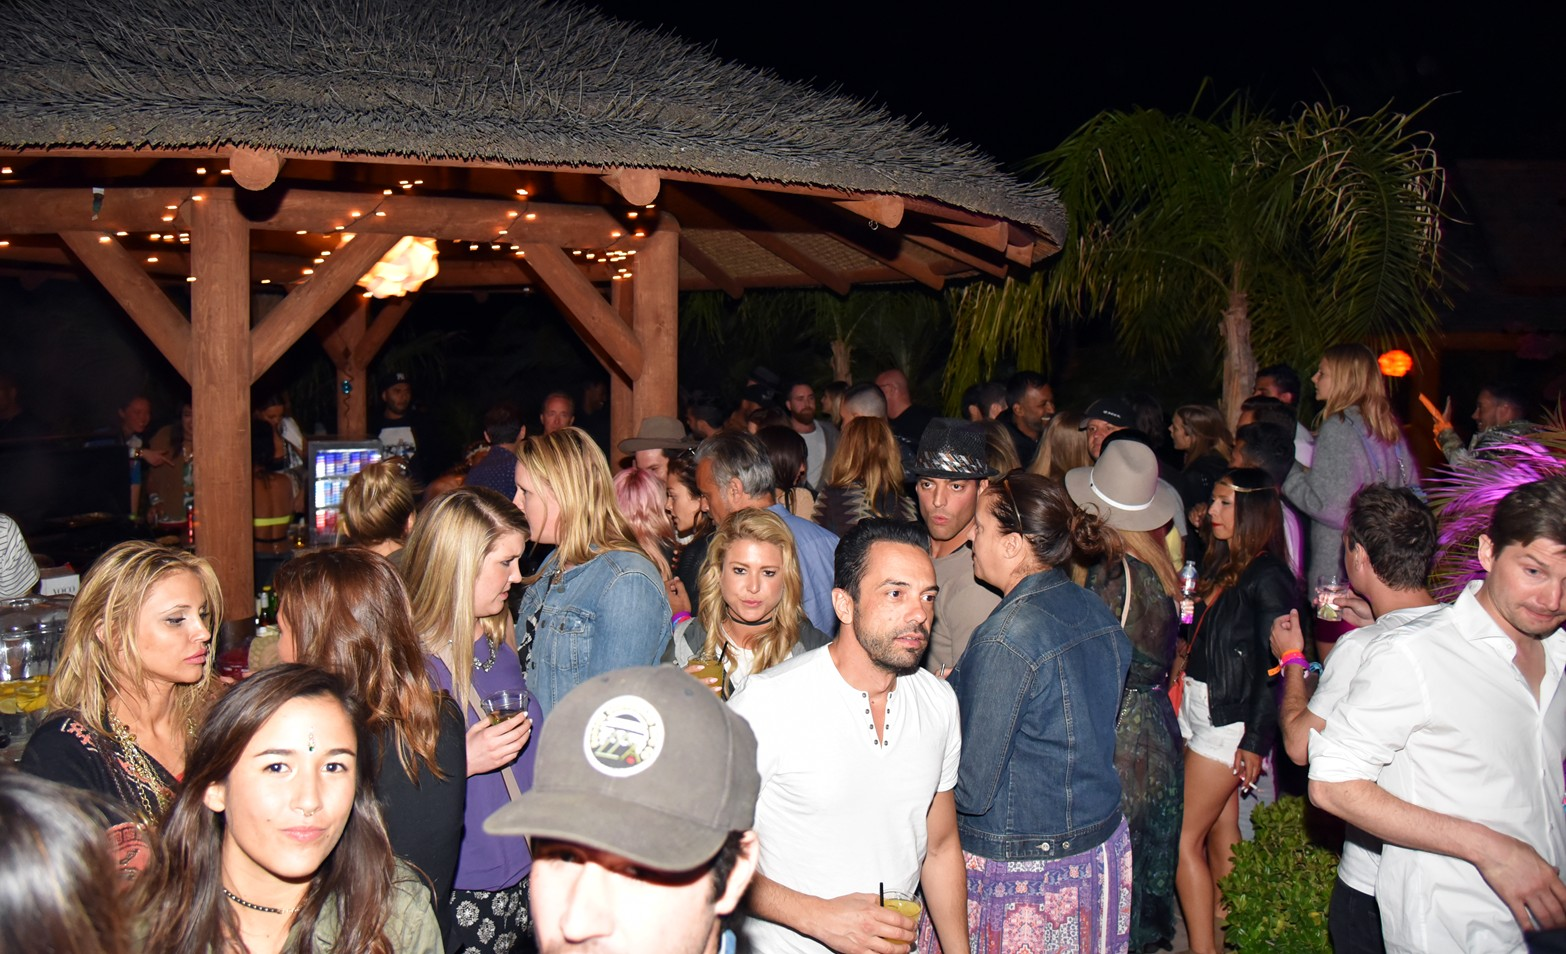 Bob Zangrillo party, Coachella, perfect party pic